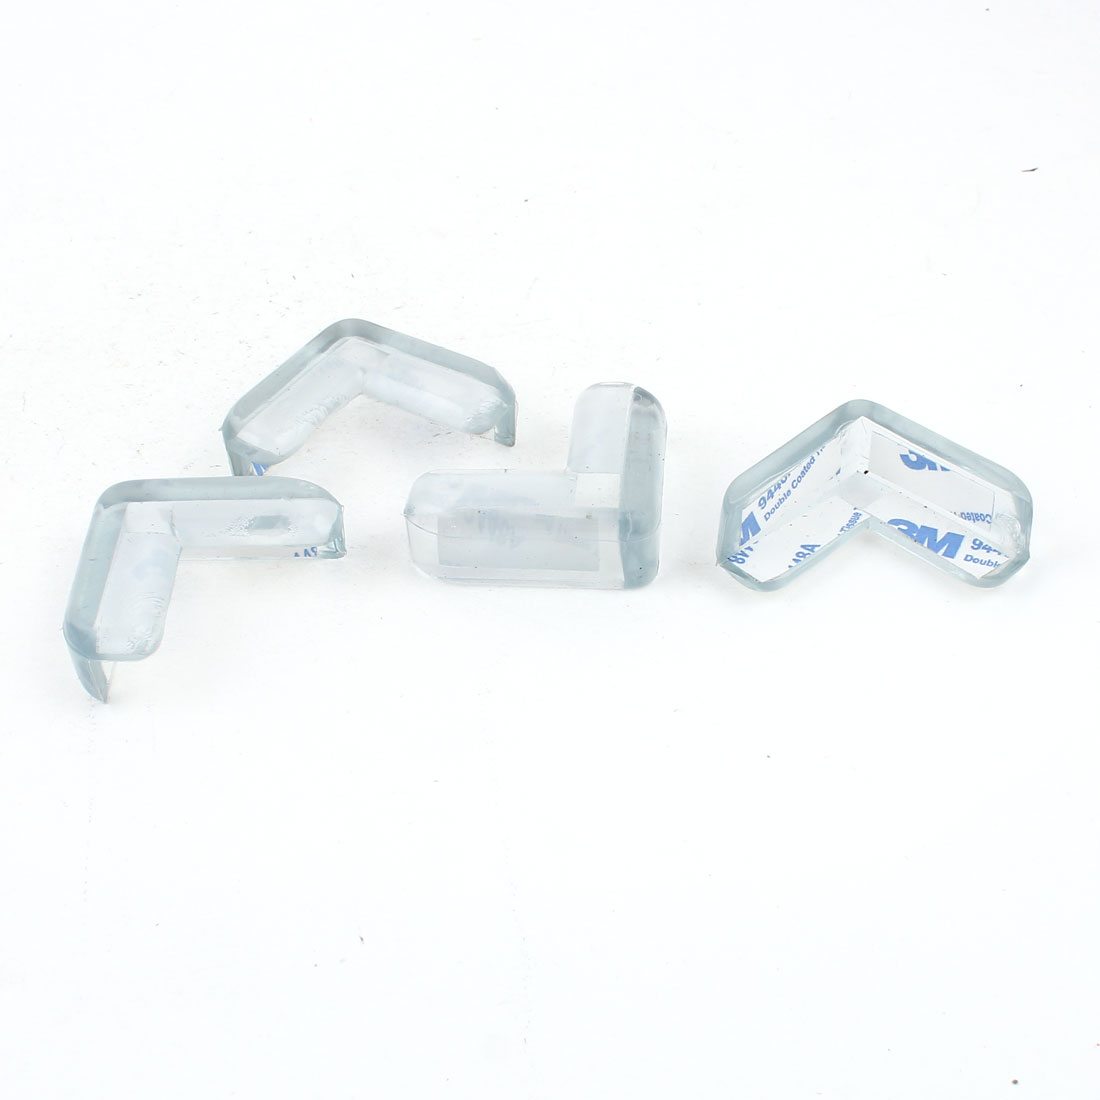 4 Pieces Clear Safety Soft Plastic Table Desk Corner Guard Cover Protector